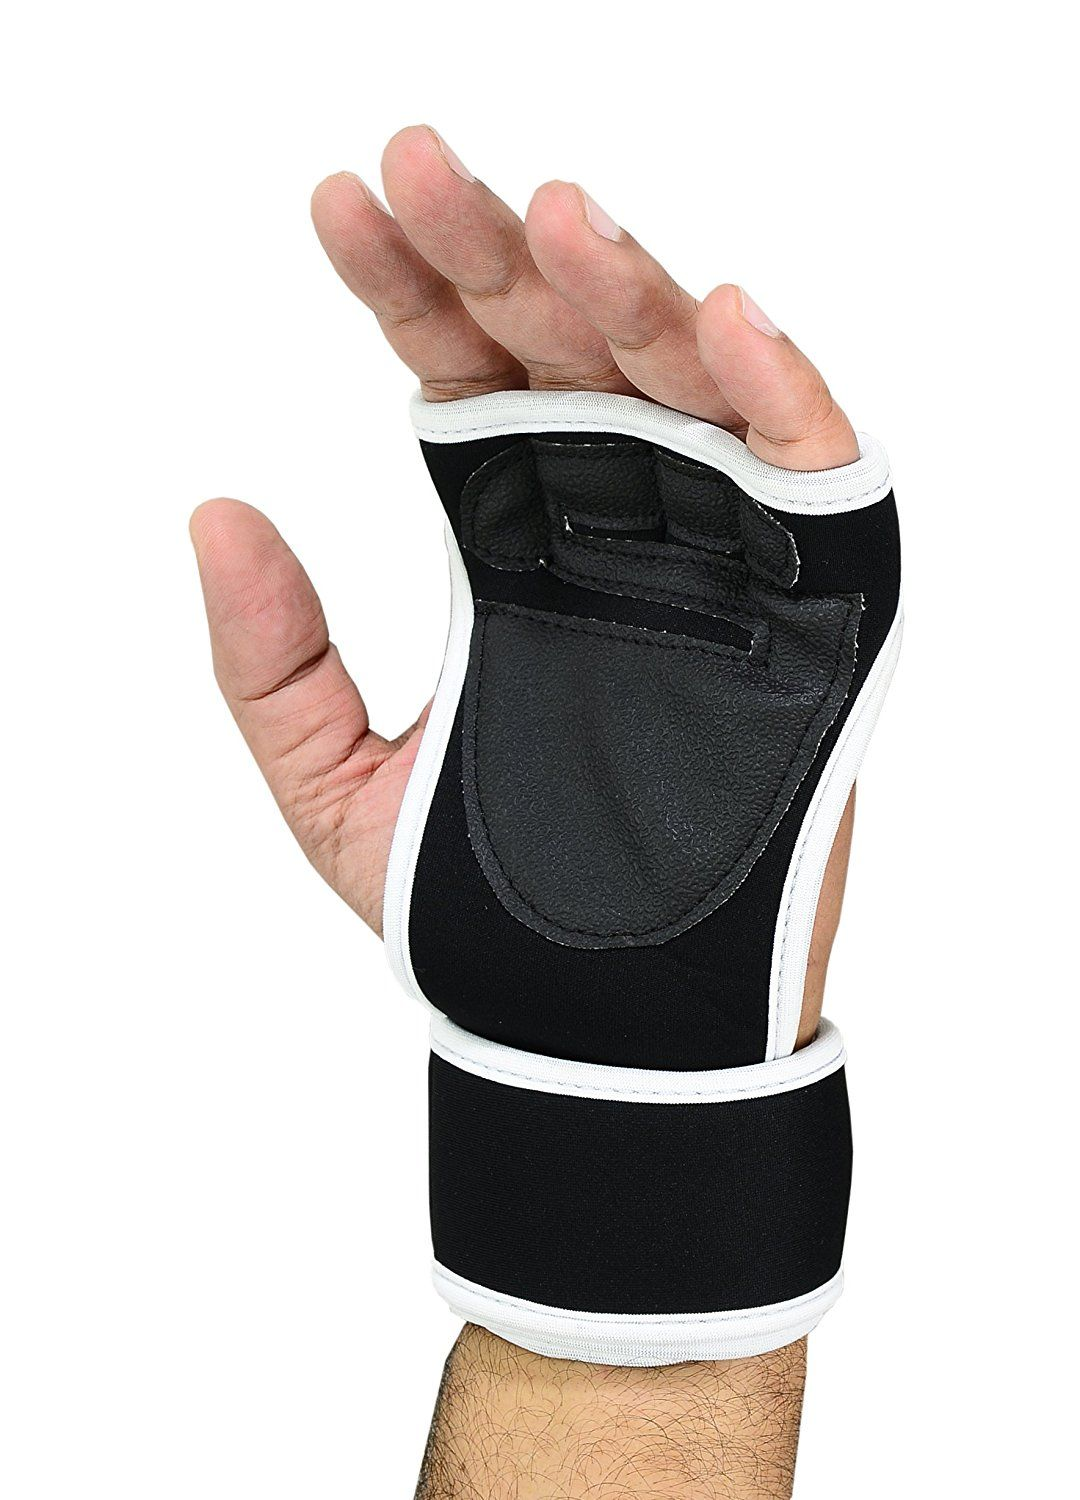 Hand Wrap Gloves New Max Neoprene Weightlifting Glove Hand Grips With Wrist Wrap